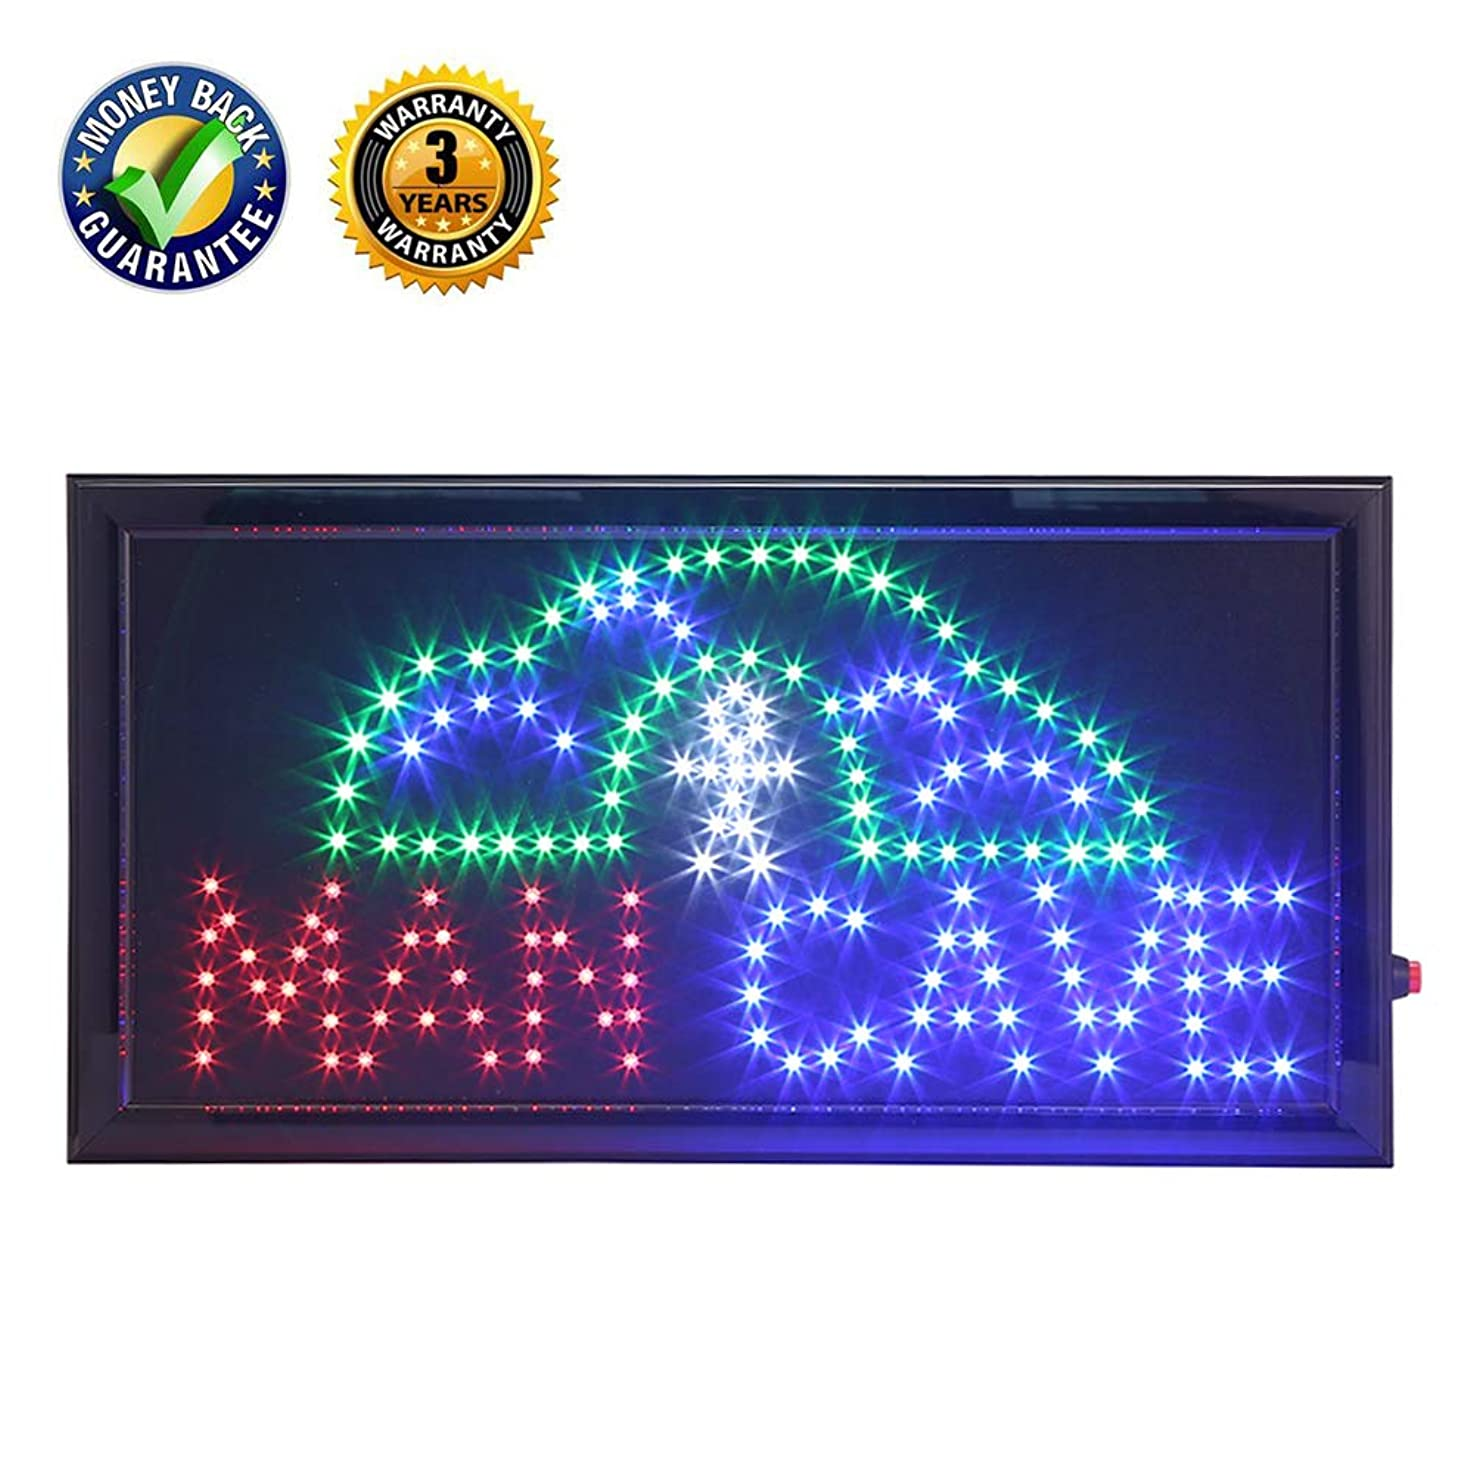 LED Man Cave Sign,Anrookie (19x10inch 110v On/Off withChain) Neon LED Sign Man Cave, 2 Modes for Stationary Lights or Animated, for a Home bar, Basement, or Game Room, Walls, Window, Bar